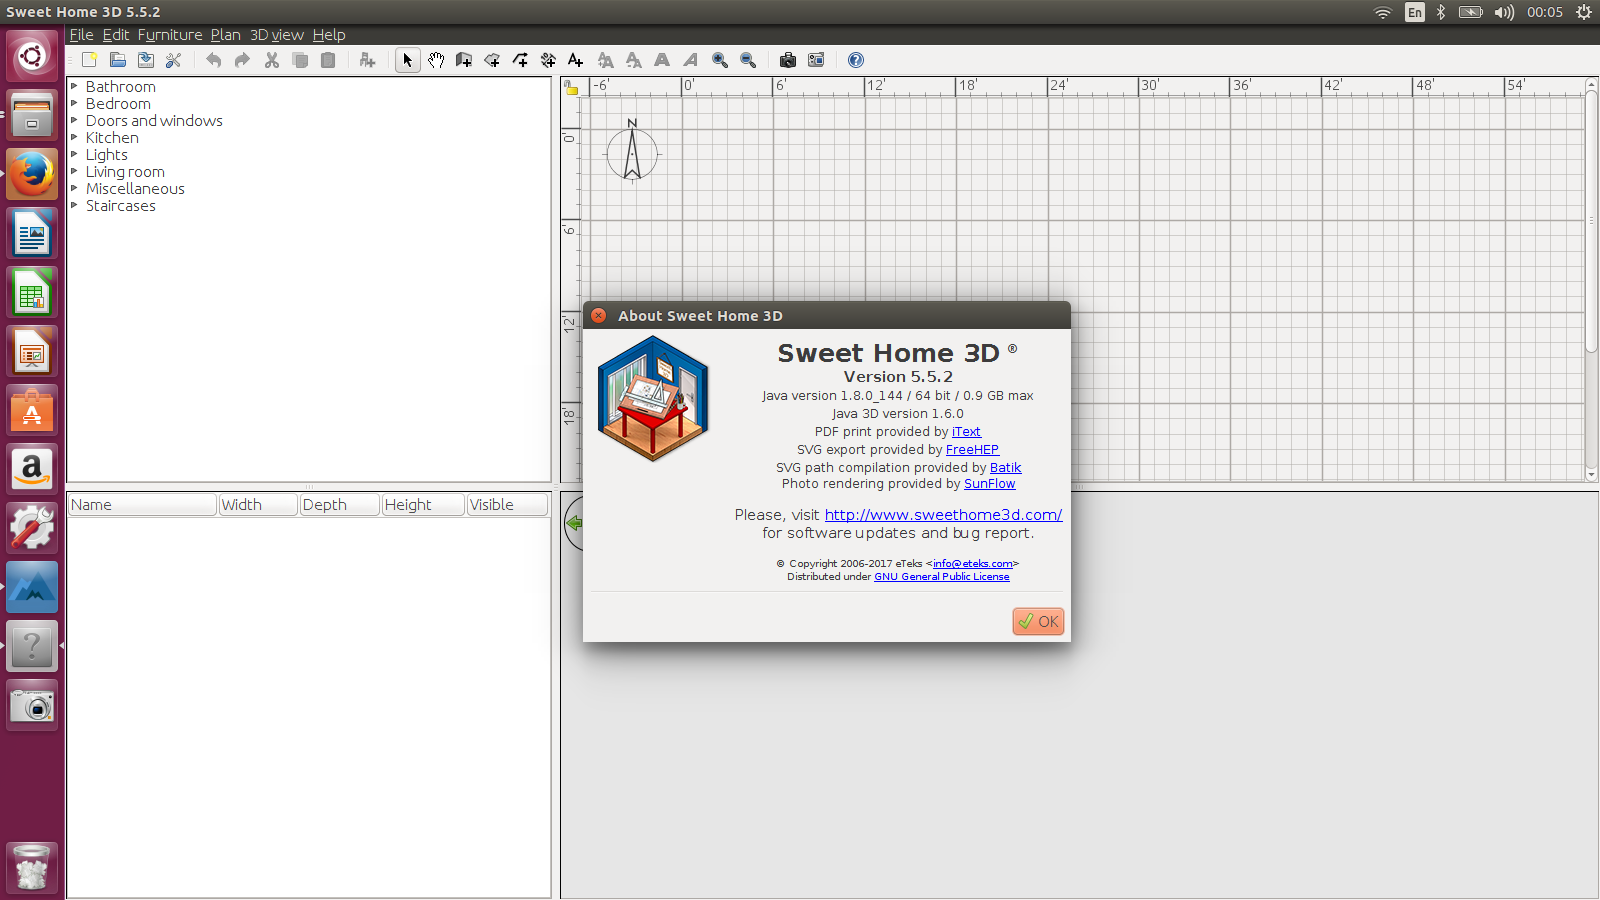 Sweet Home 3d How To Install Program On Ubuntu How To Install Sweet Home 3d 5 5